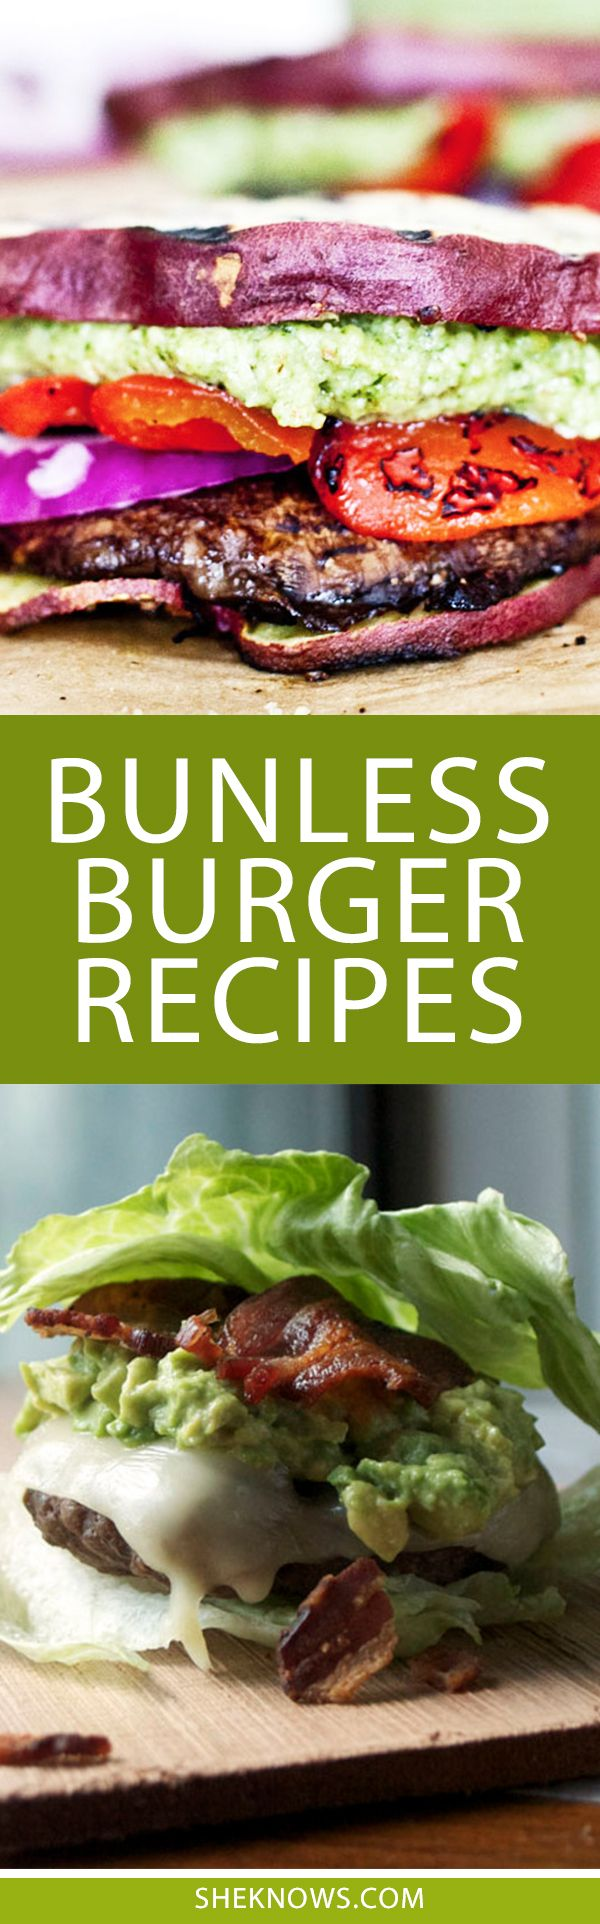 Bun-free is the way to be! Spice up burger night with these quick and easy bunless burger recipes.